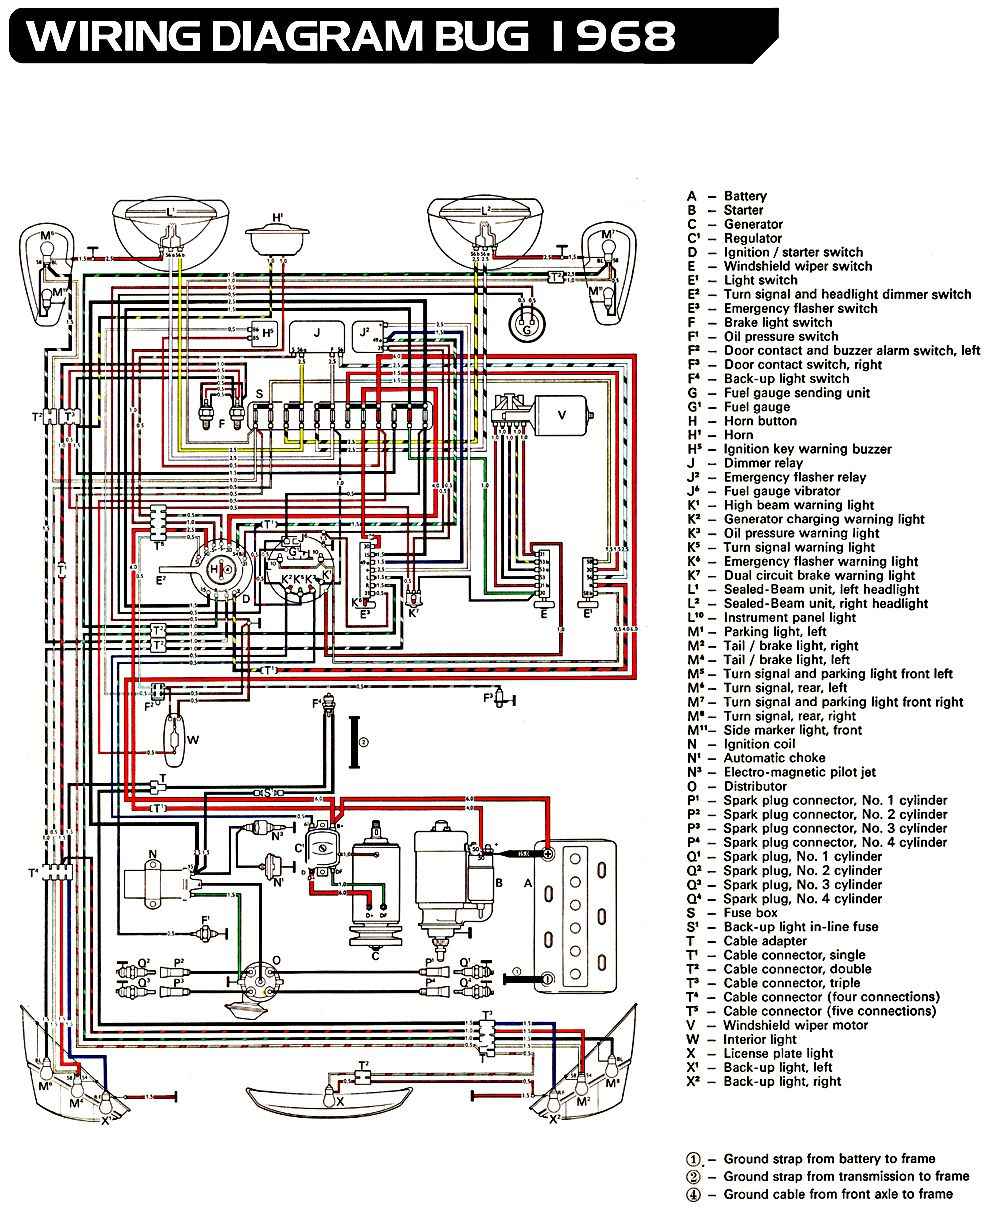 small resolution of vw bug ignition wiring diagram 73 vw wiring diagram free vw vw bug wiring diagram 2004 vw bug wiring diagram